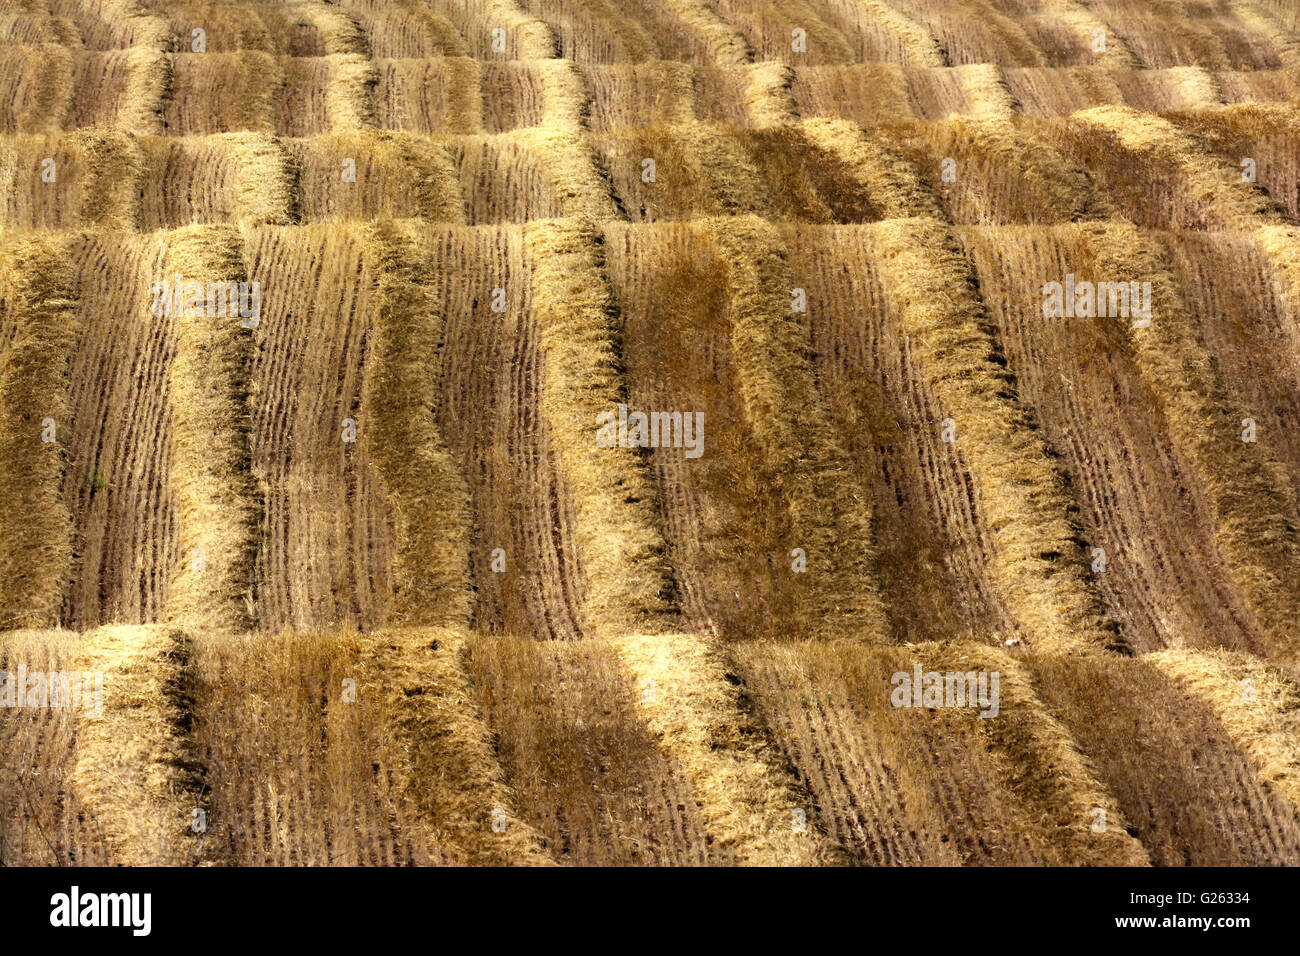 Hilly field, Wave pattern, Israel - Stock Image